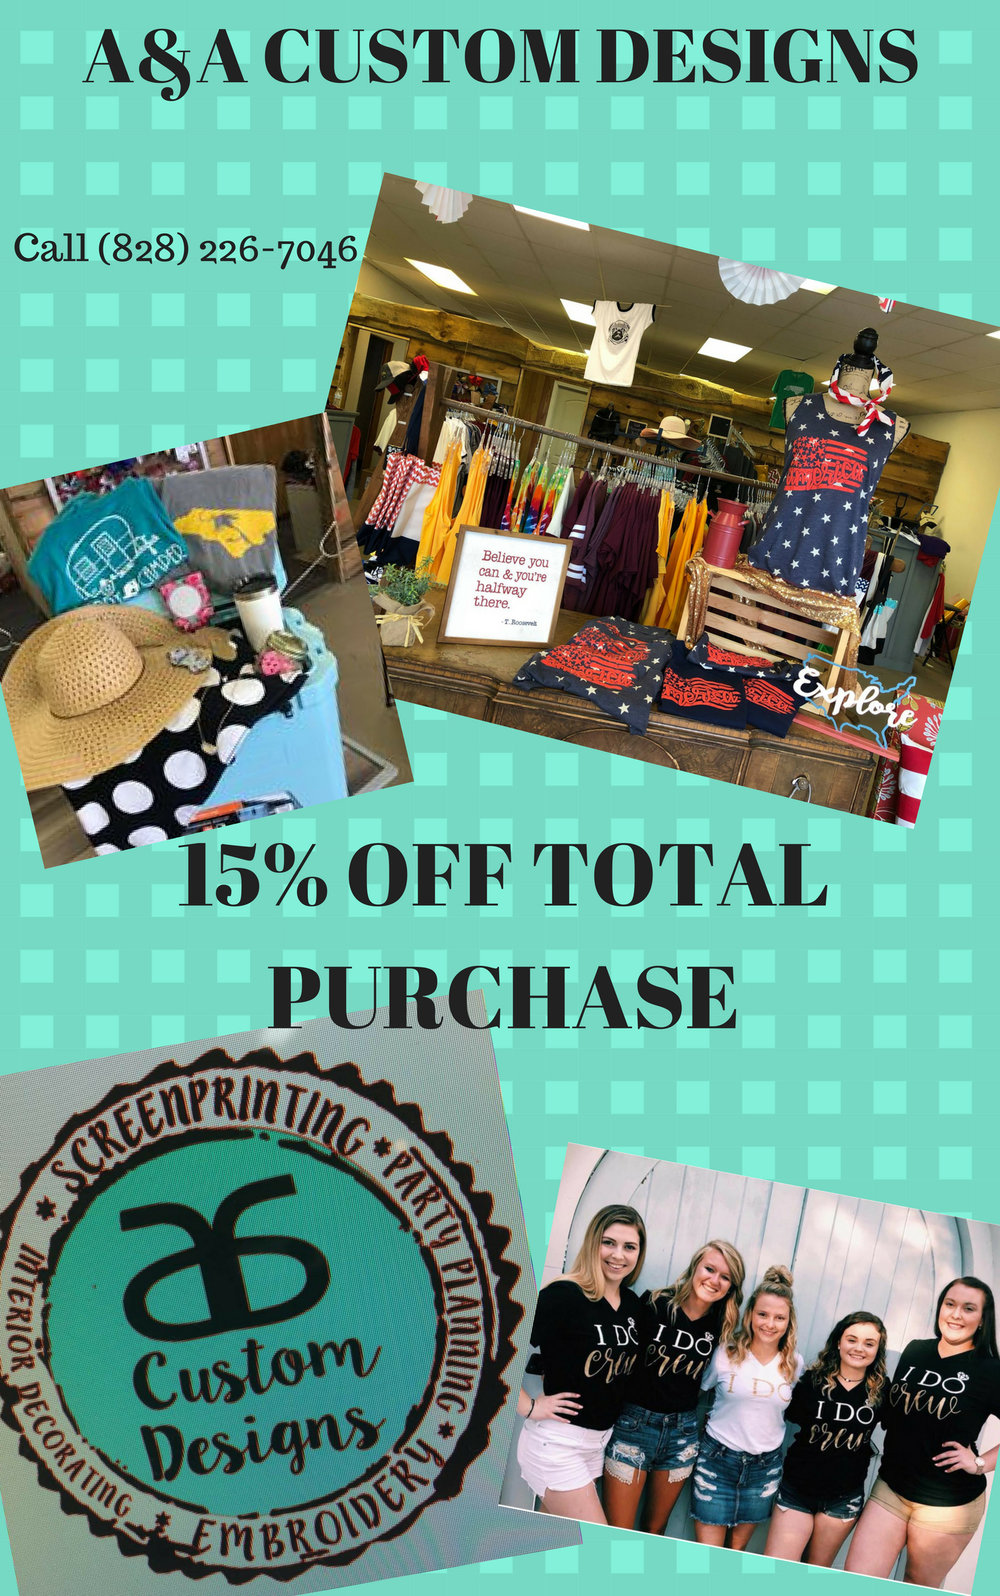 A&A Custom Designs 15% OFF Purchase